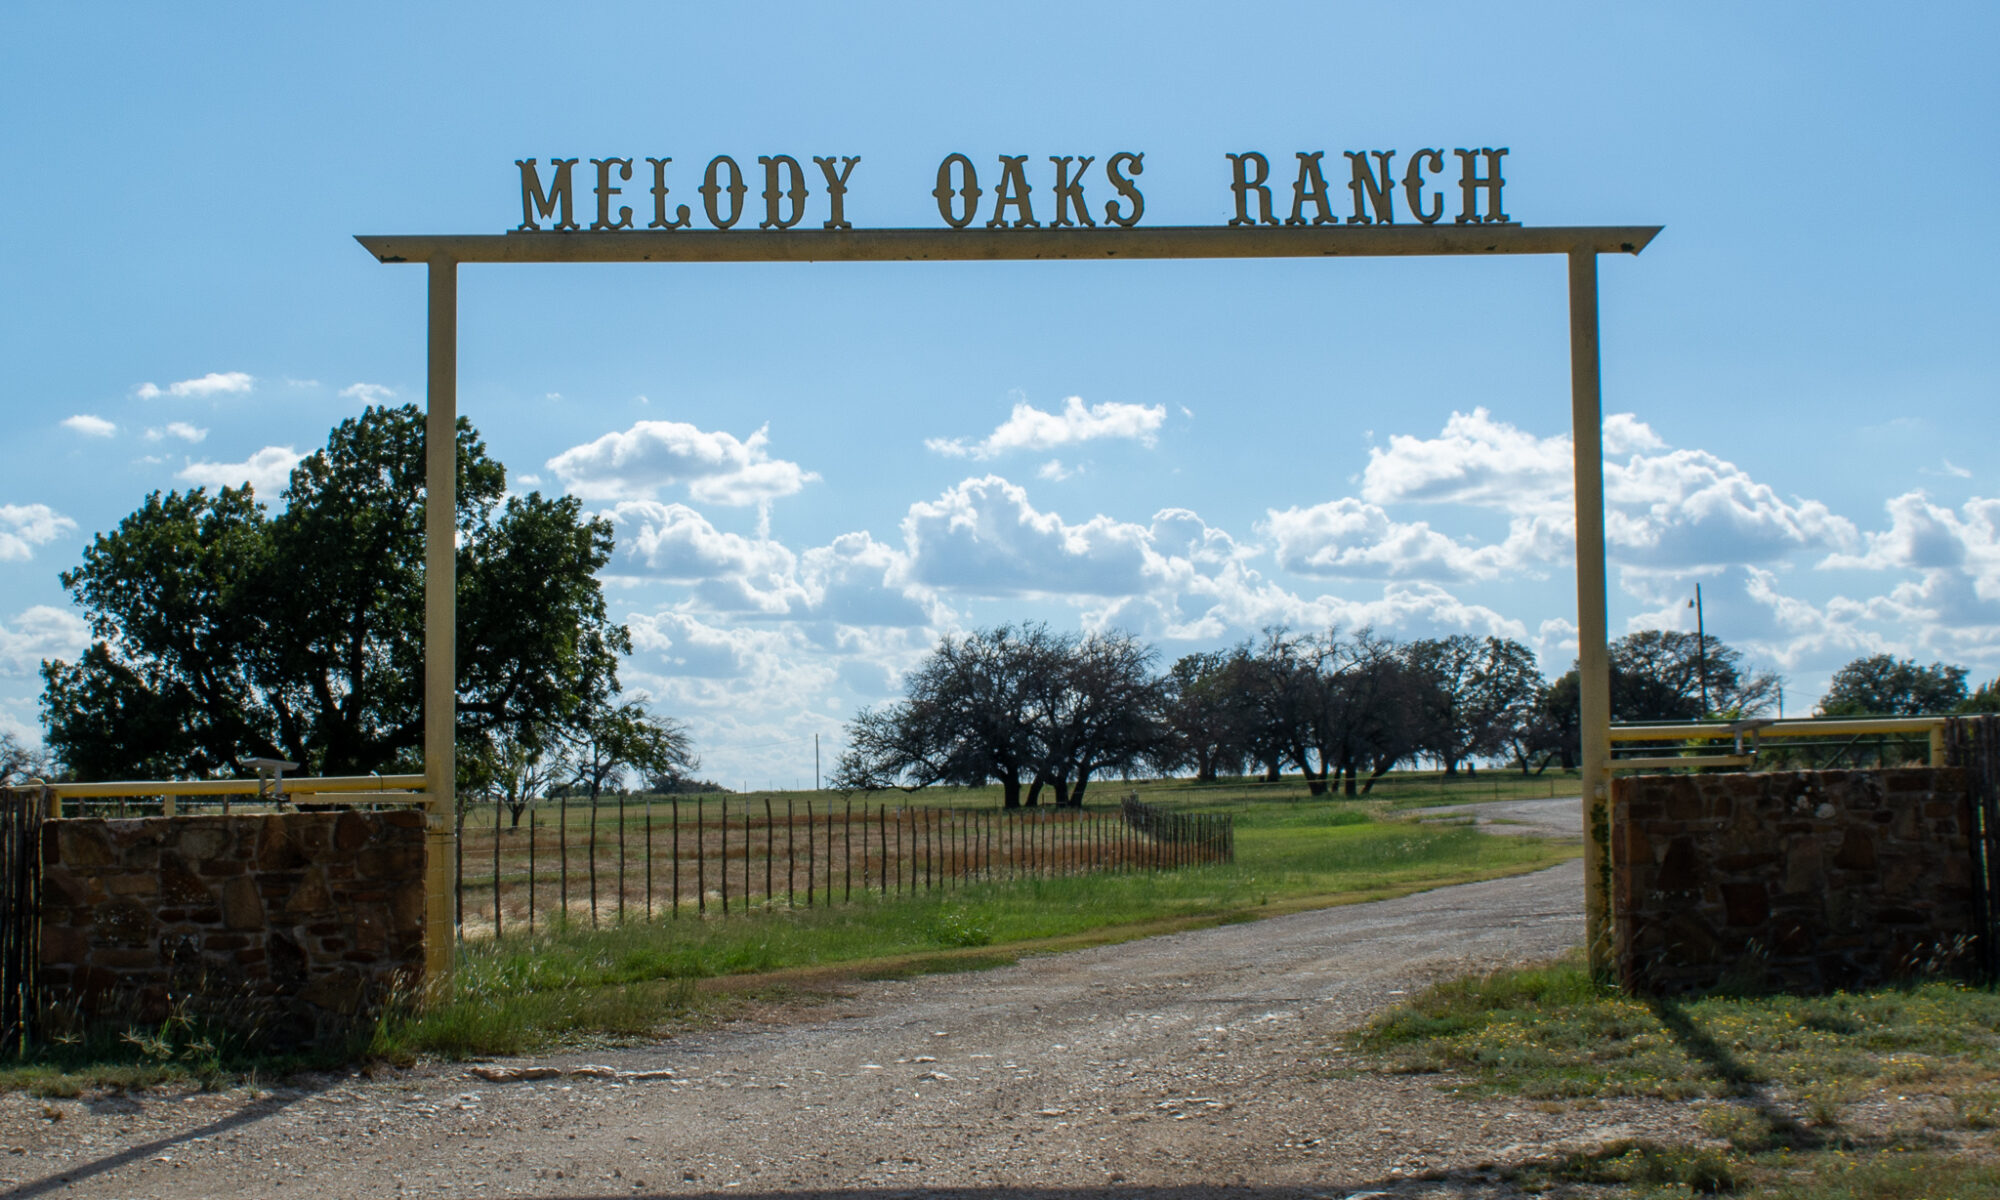 The Melody Oaks Ranch